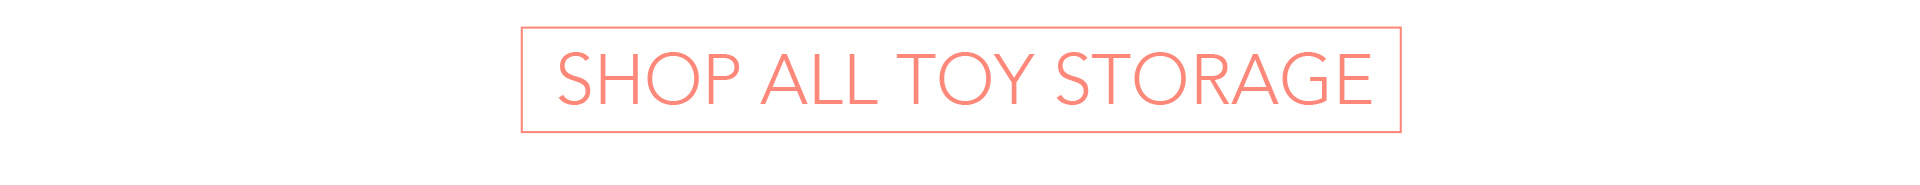 Click Here to Shop All Toy Storage